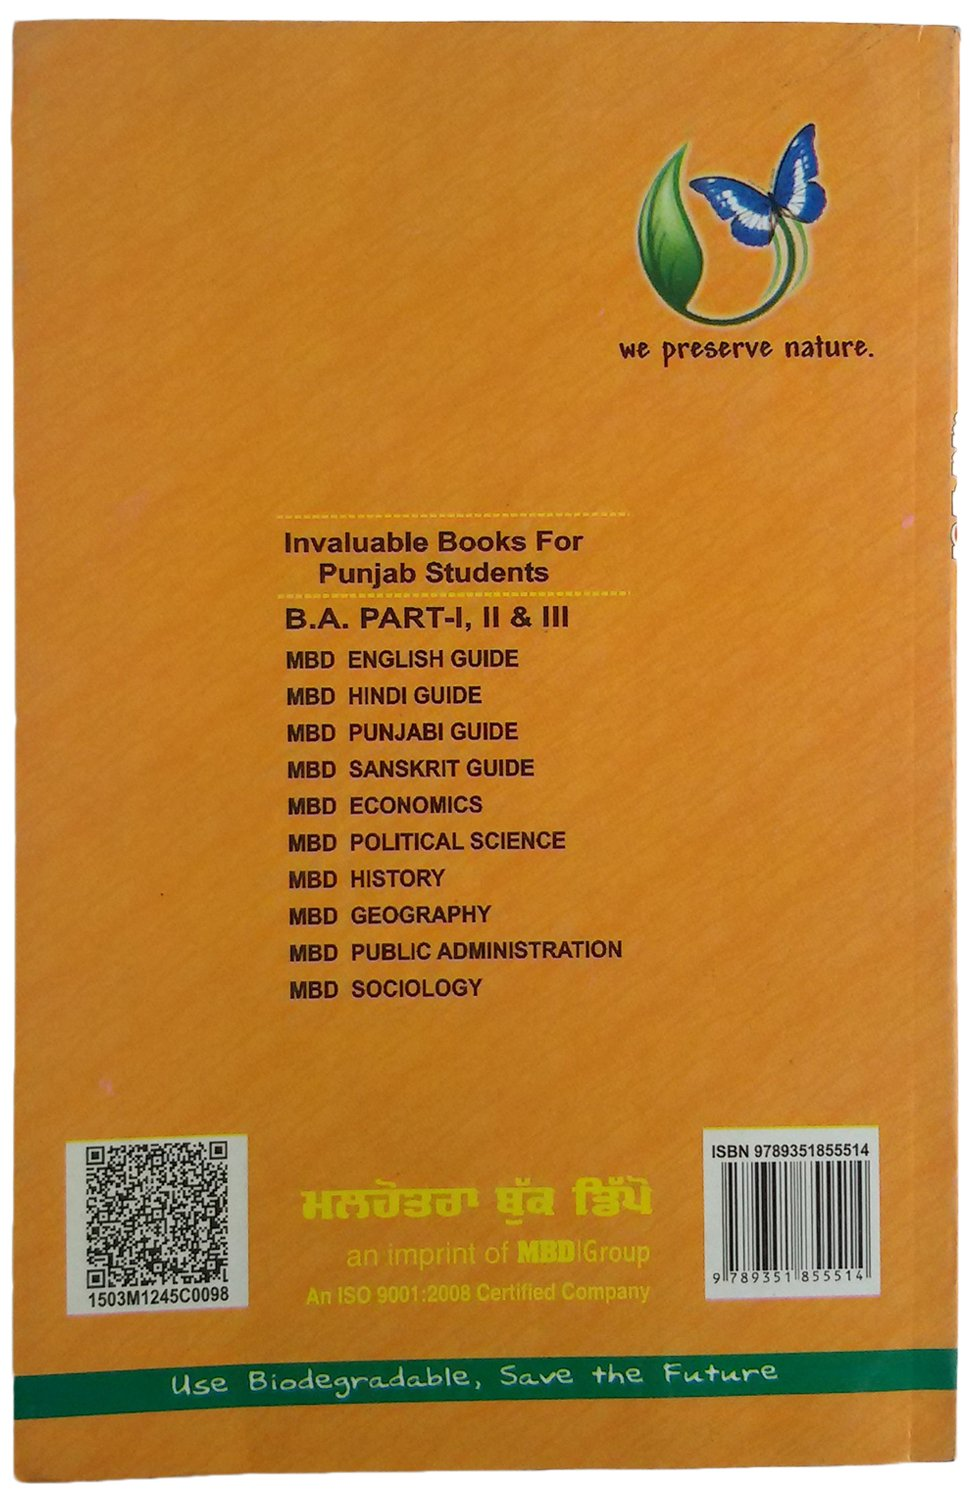 Buy MBD Punjabi Guide for 6th semester Book Online at Low Prices in India | MBD  Punjabi Guide for 6th semester Reviews & Ratings - Amazon.in